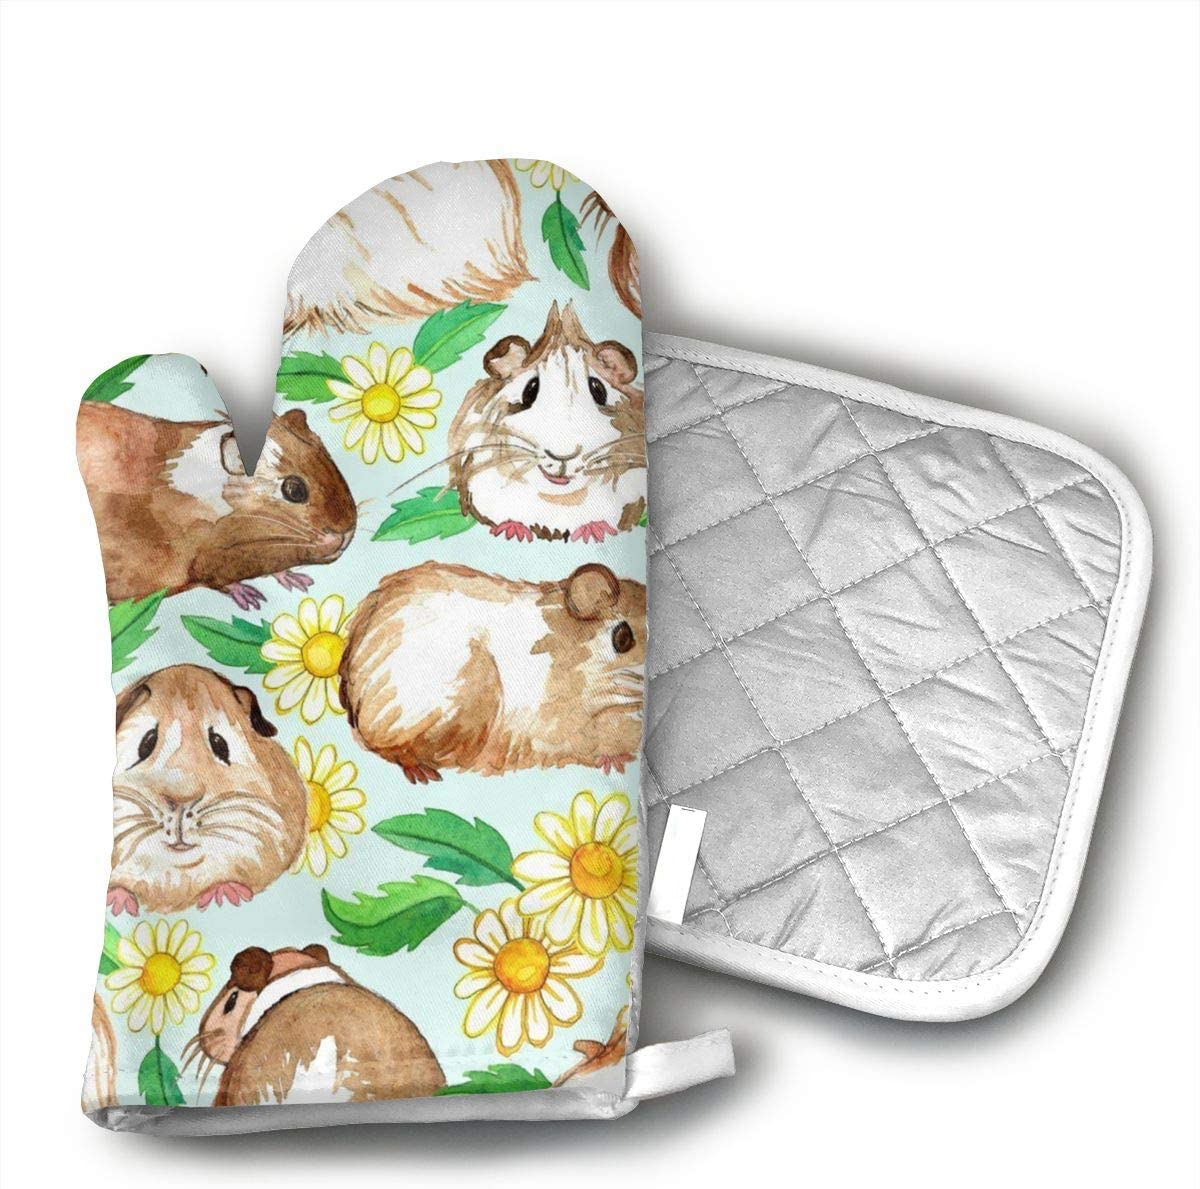 FGXQN Guinea Pigs and Daisies Oven Mitts, with The Heat Resistance of Silicone and Flexibility of Cotton, Recycled Cotton Infill, Terrycloth Lining,